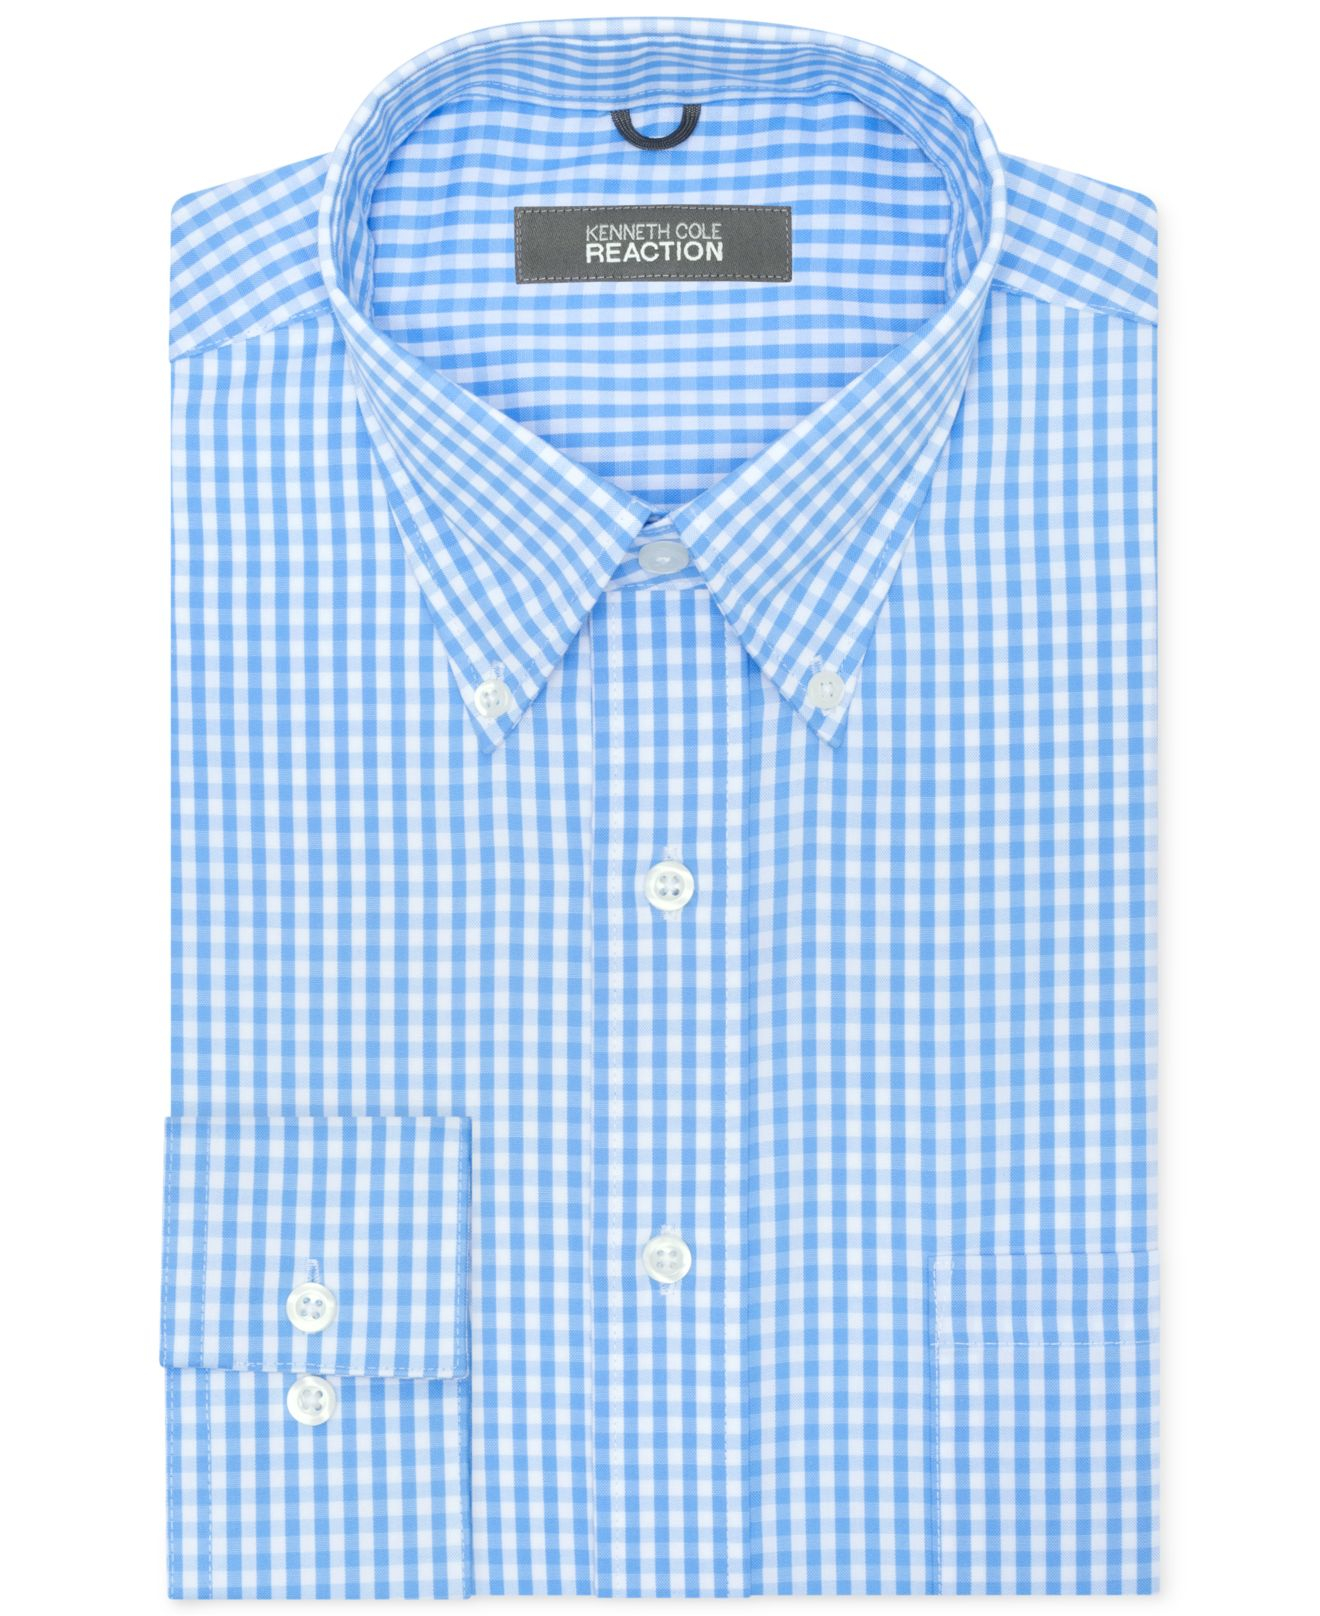 Lyst Kenneth Cole Reaction Non Iron Check Dress Shirt In Blue For Men